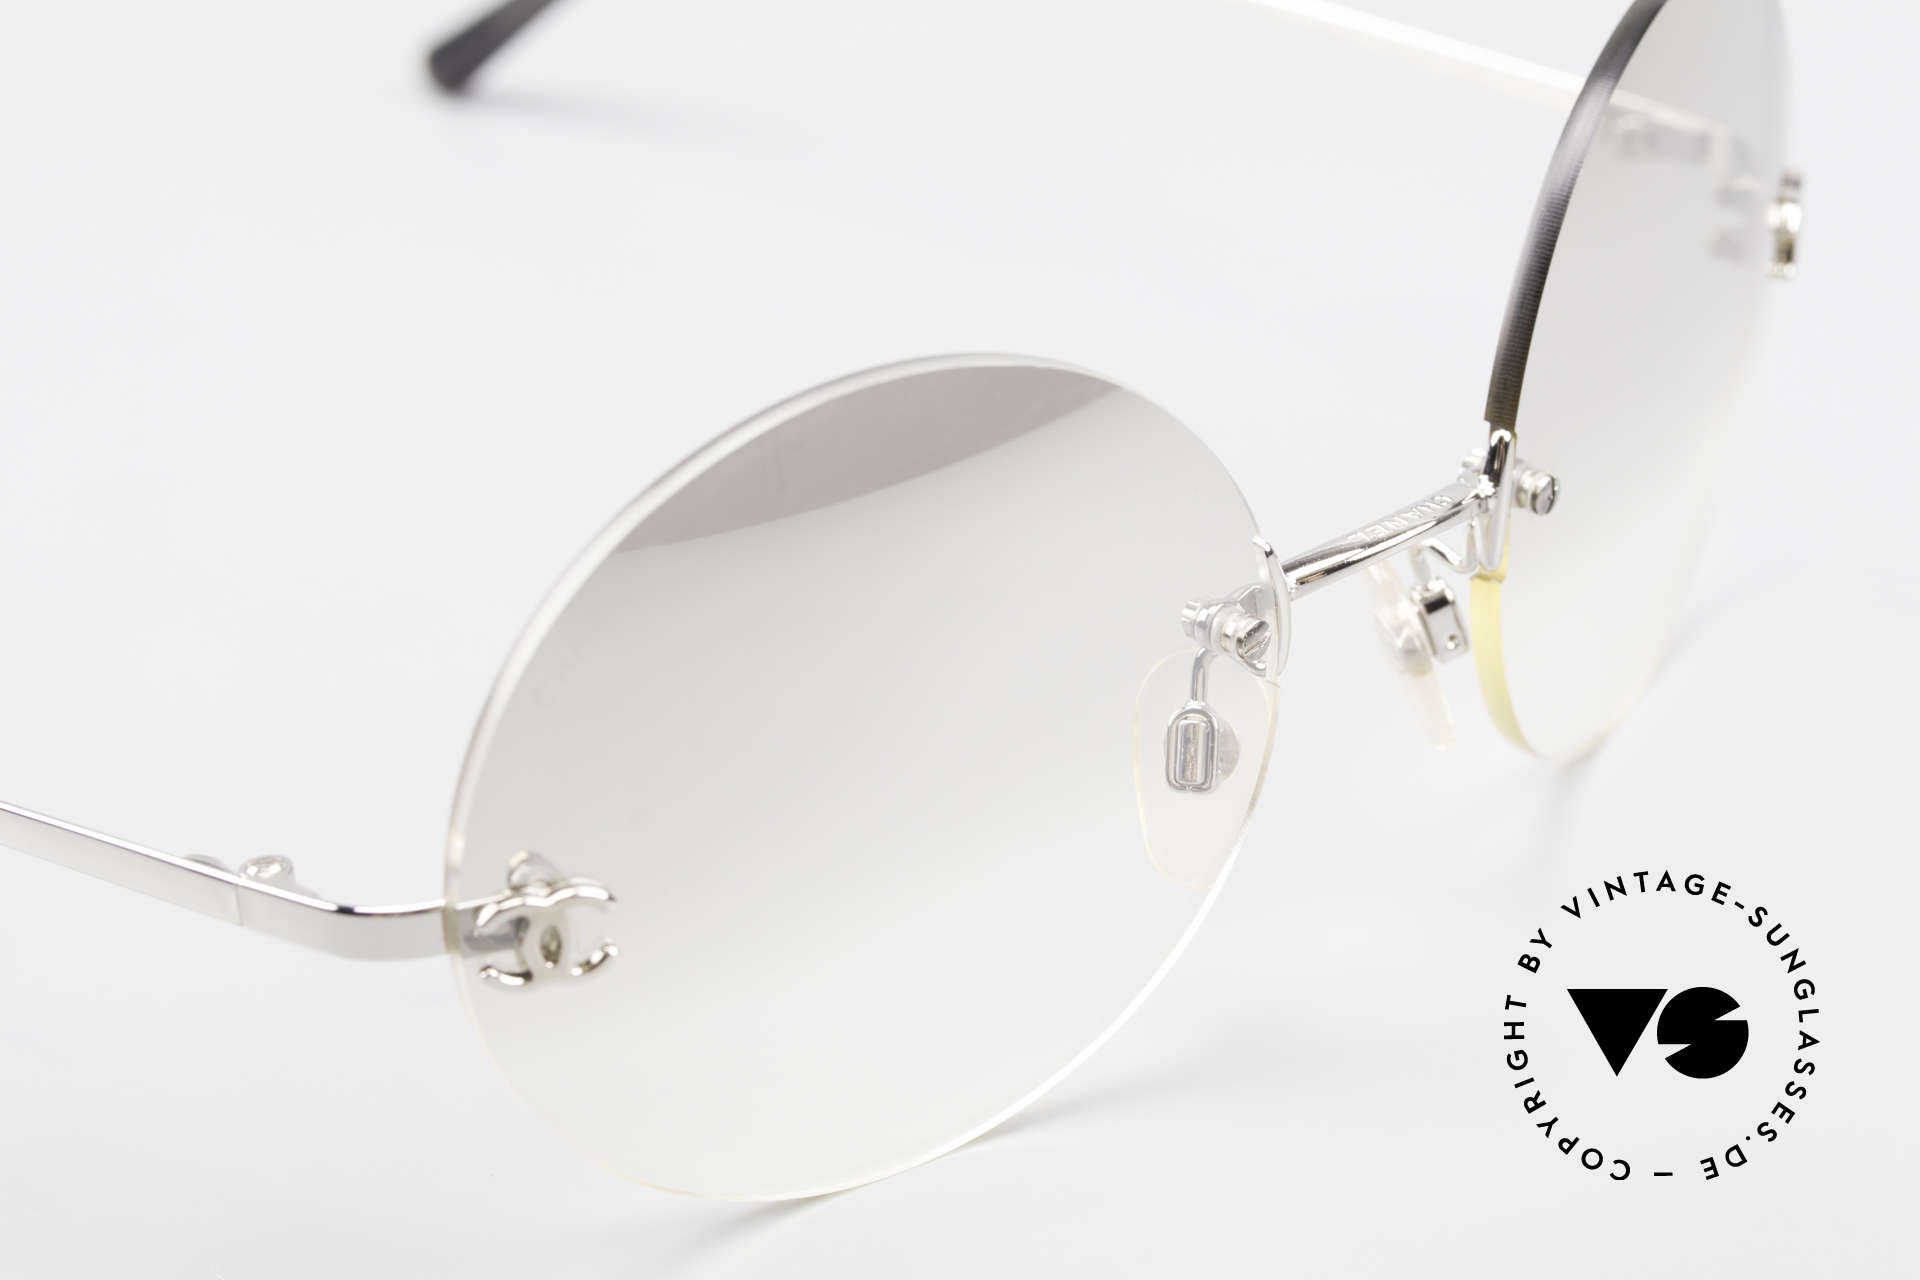 Chanel 4056 Round Luxury Sunglasses 90's, unworn designer shades (incl. original case by Chanel), Made for Men and Women